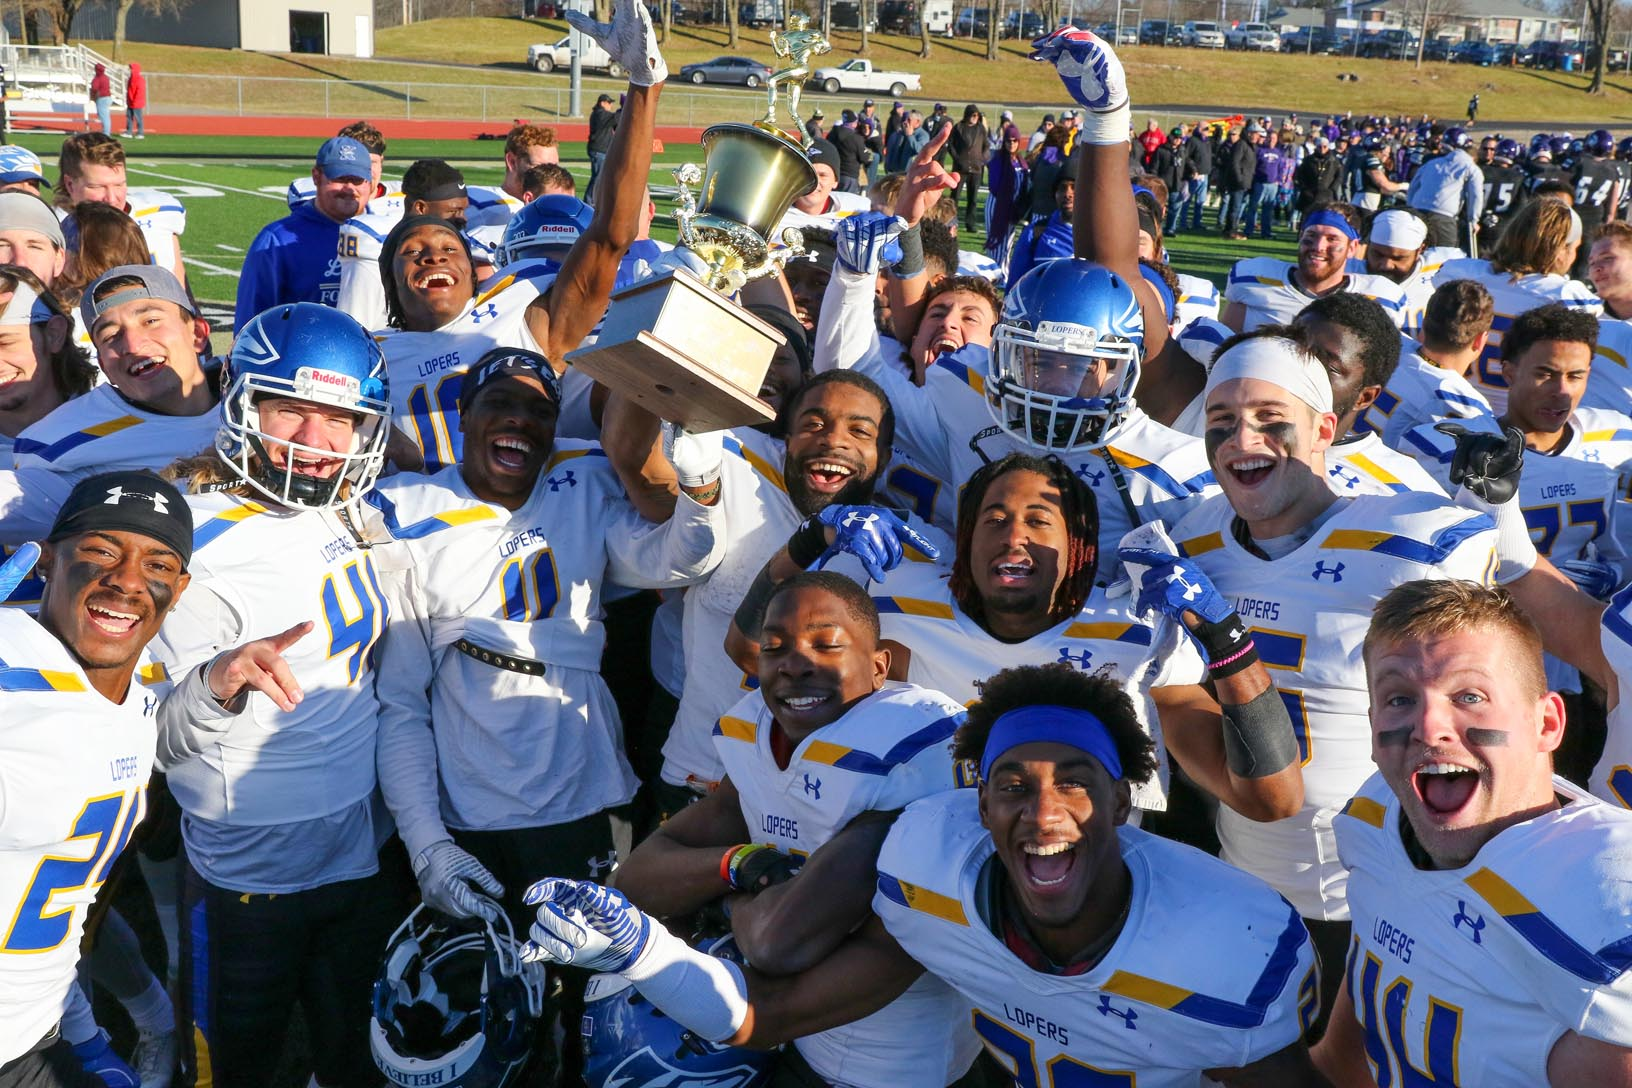 University of Nebraska at Kearney players celebrate their 50-33 win over Winona State in Saturday's Mineral Water Bowl in Excelsior Springs, Missouri. The Lopers finished the season 7-5 with the win. (Photo by Todd Gottula, UNK Communications)